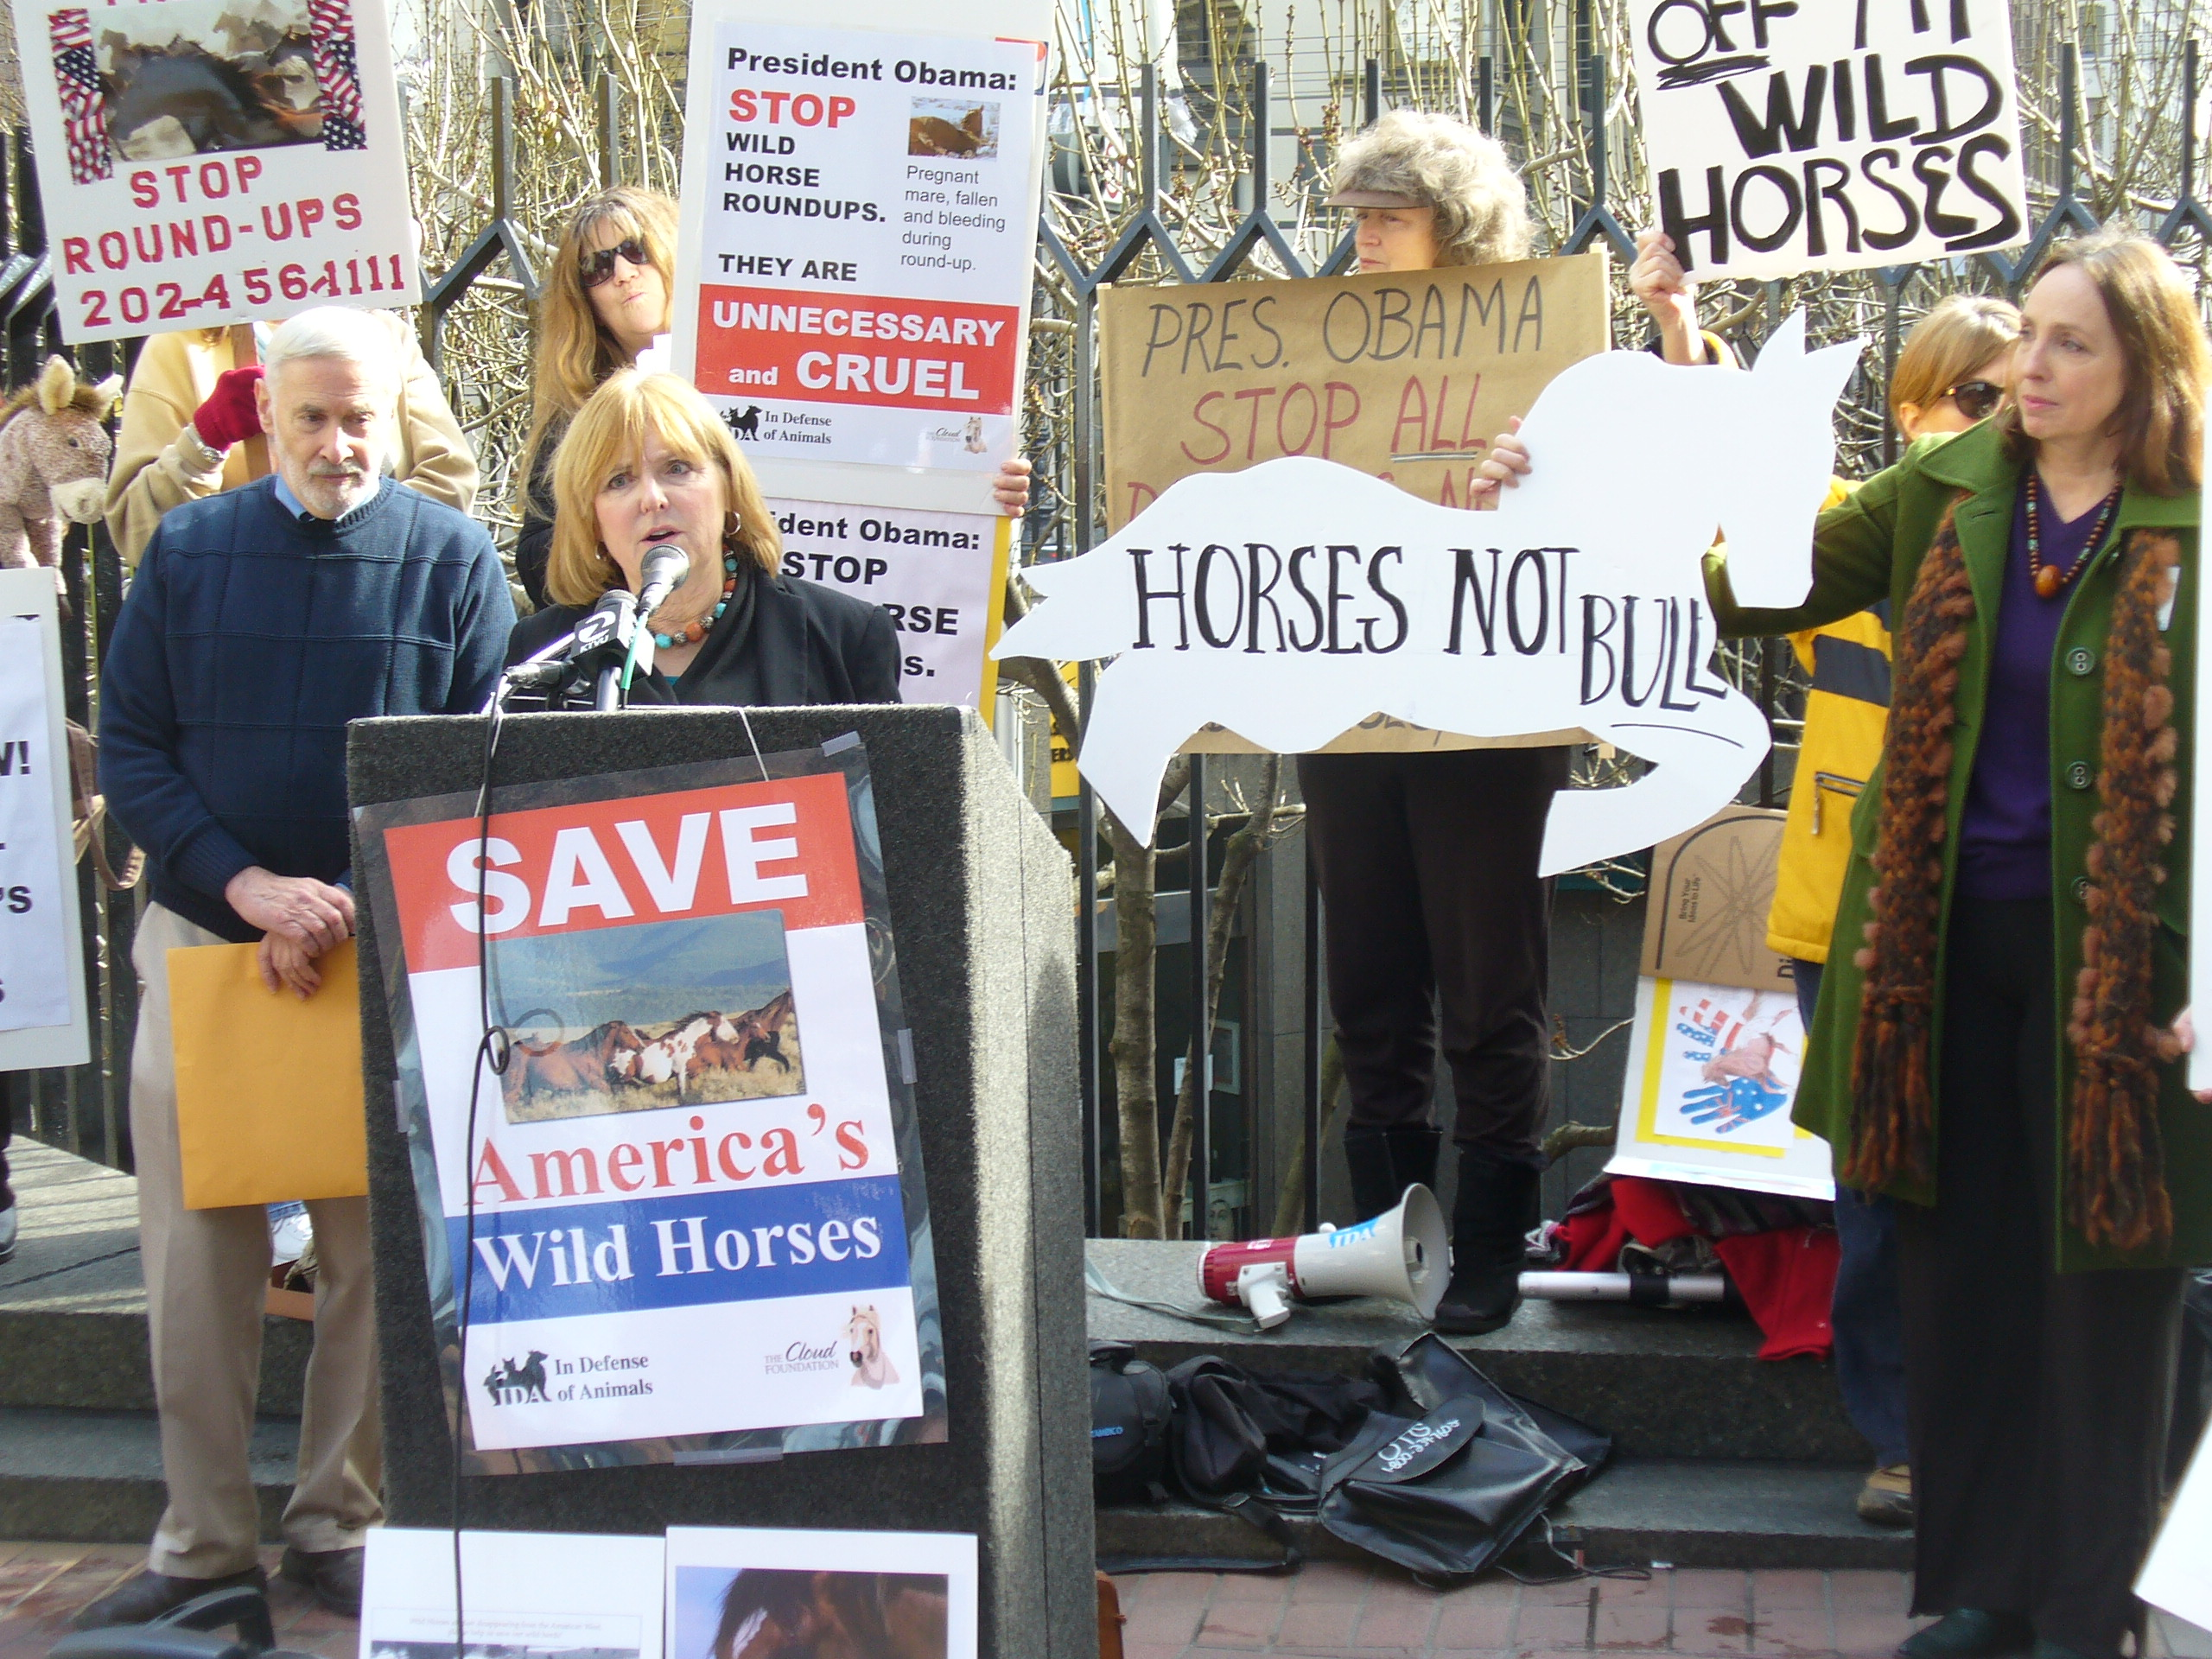 Terri Farley speaks at the Rally to Stop the Roundups (Photo © Anne Novak.)